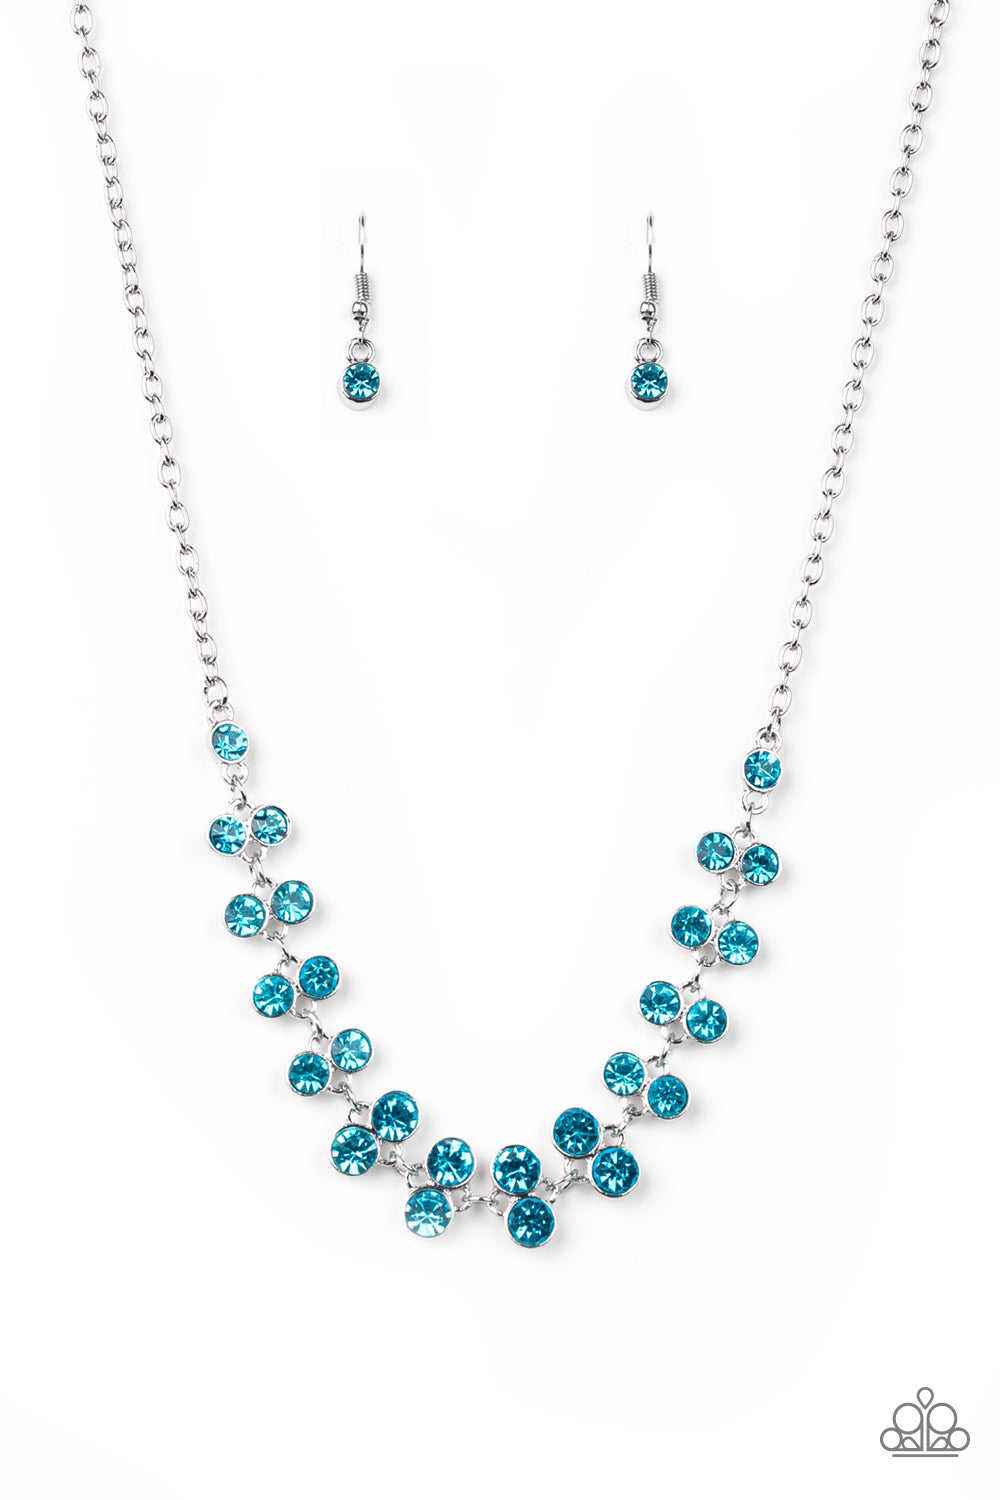 Paparazzi Accessories - Super Starstruck - Blue Necklace Set - JMJ Jewelry Collection